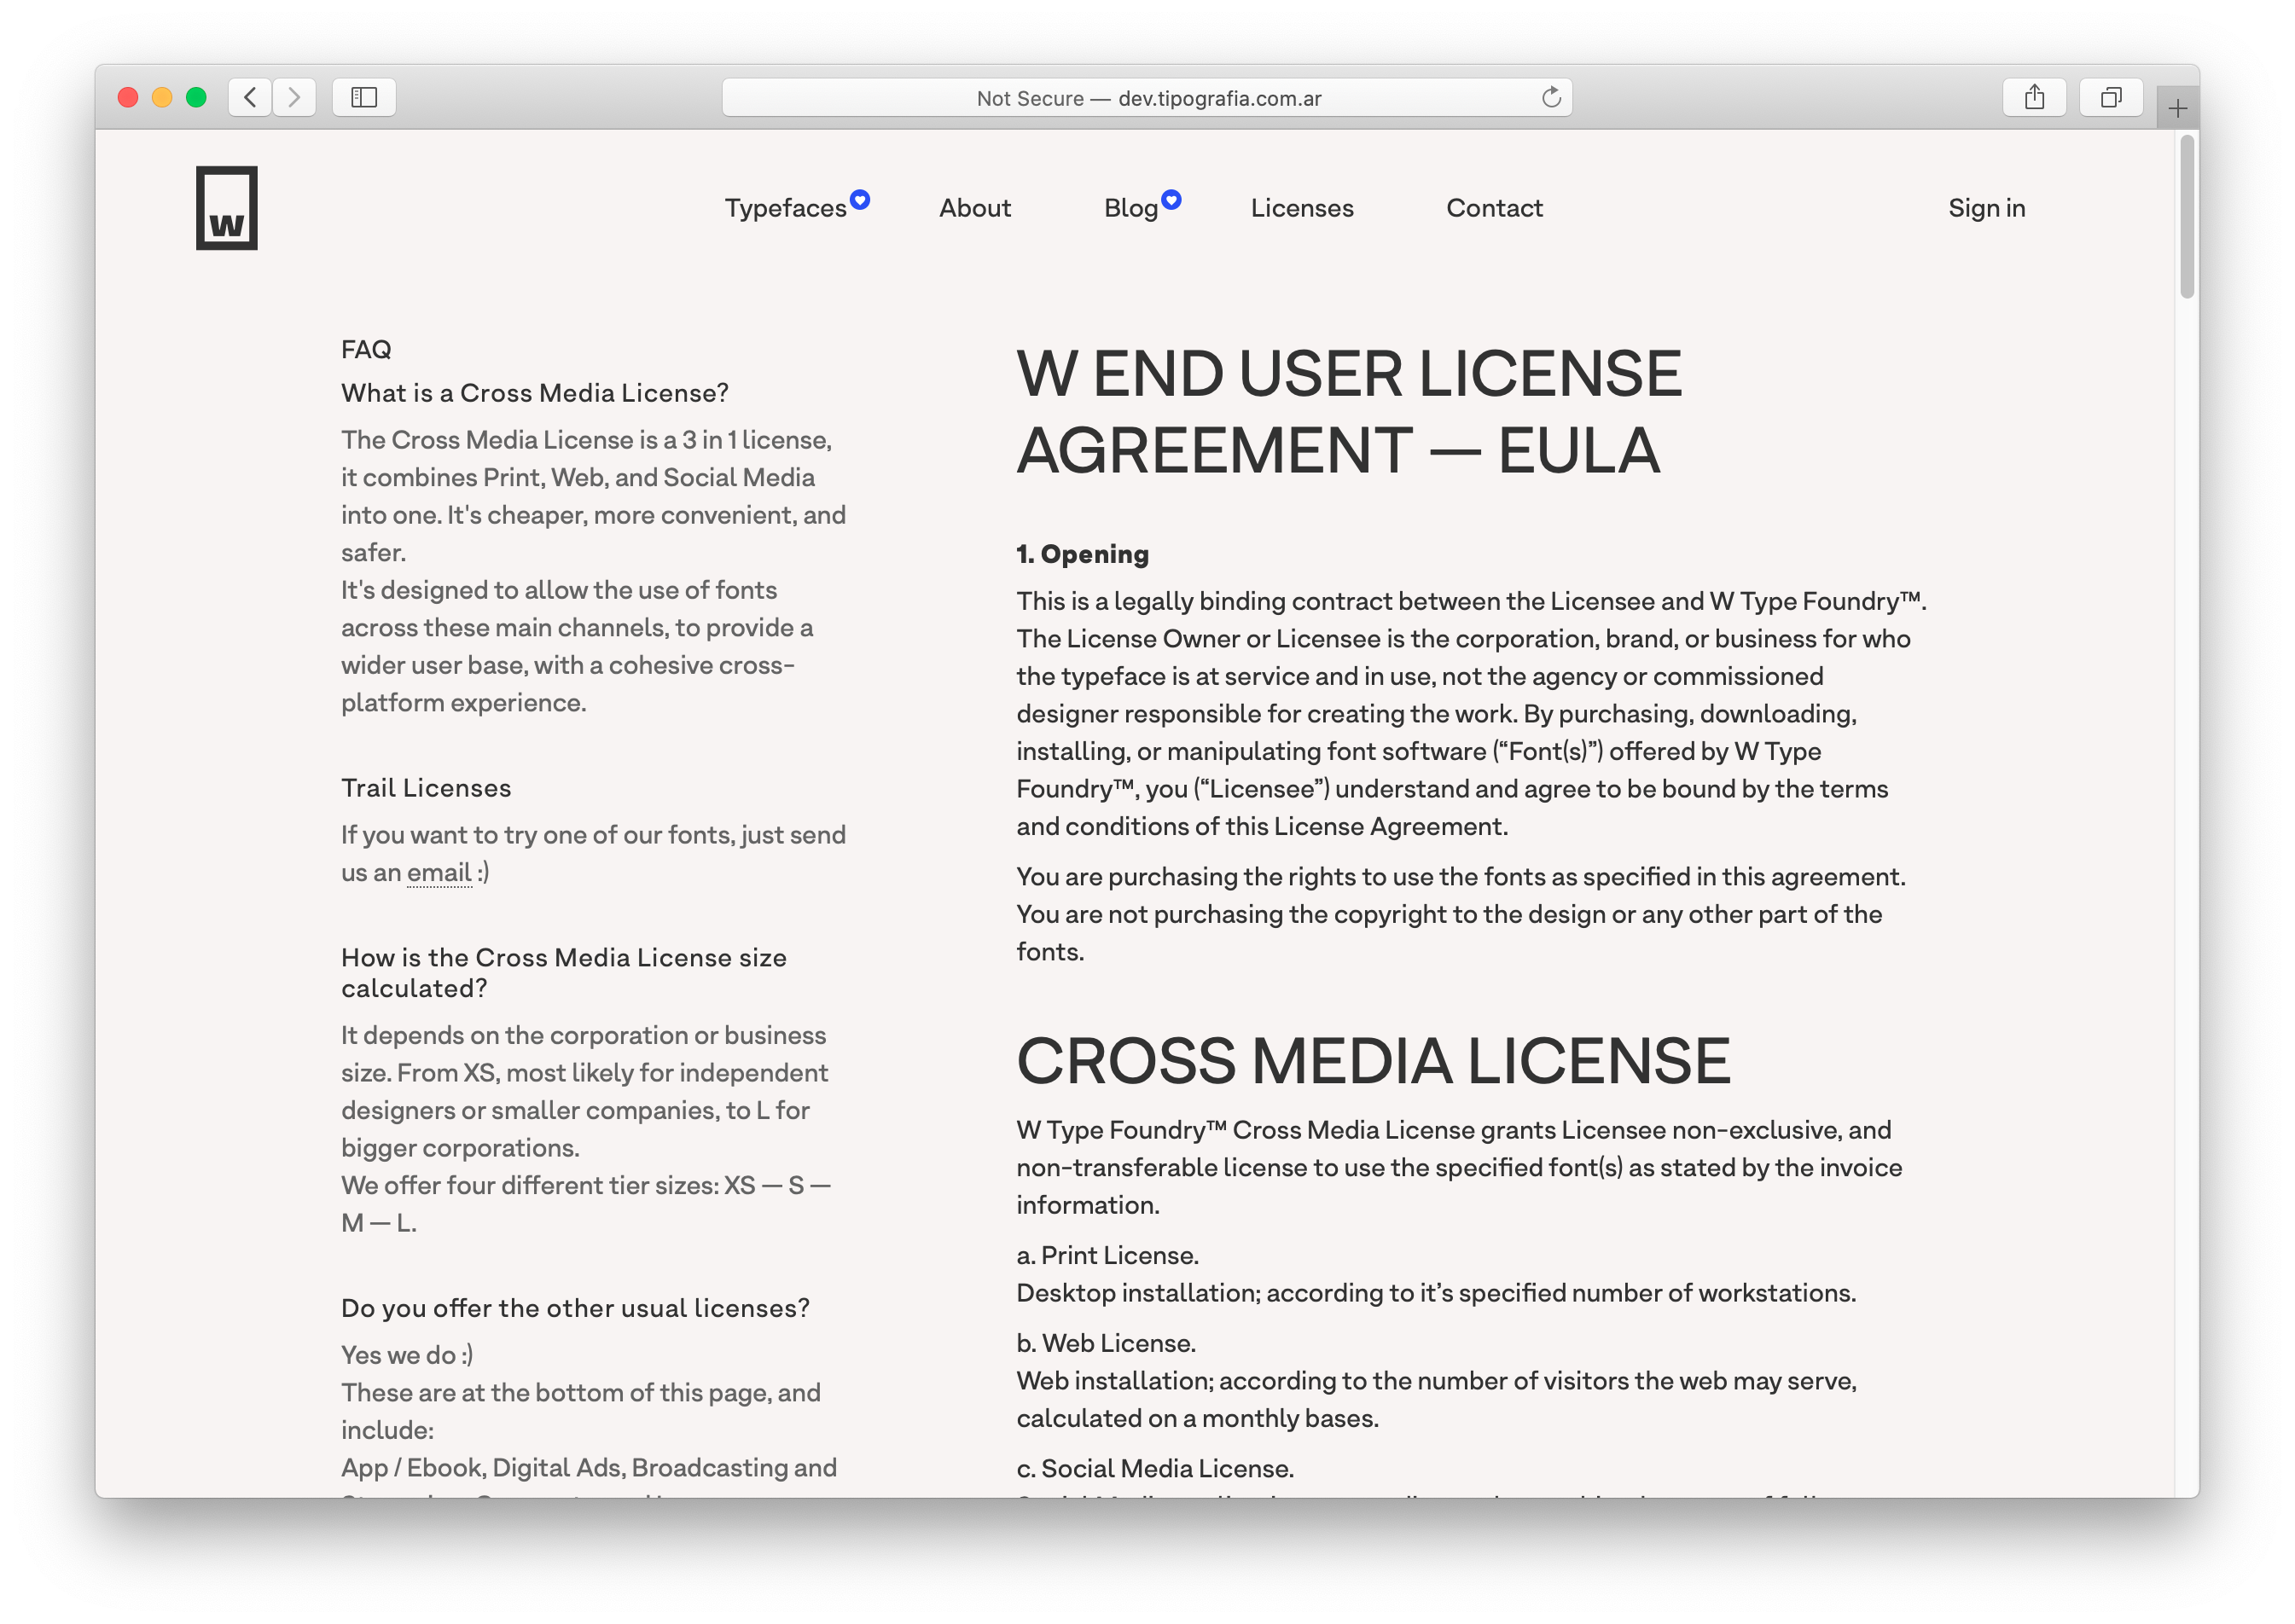 The new W Type Foundry website EULA